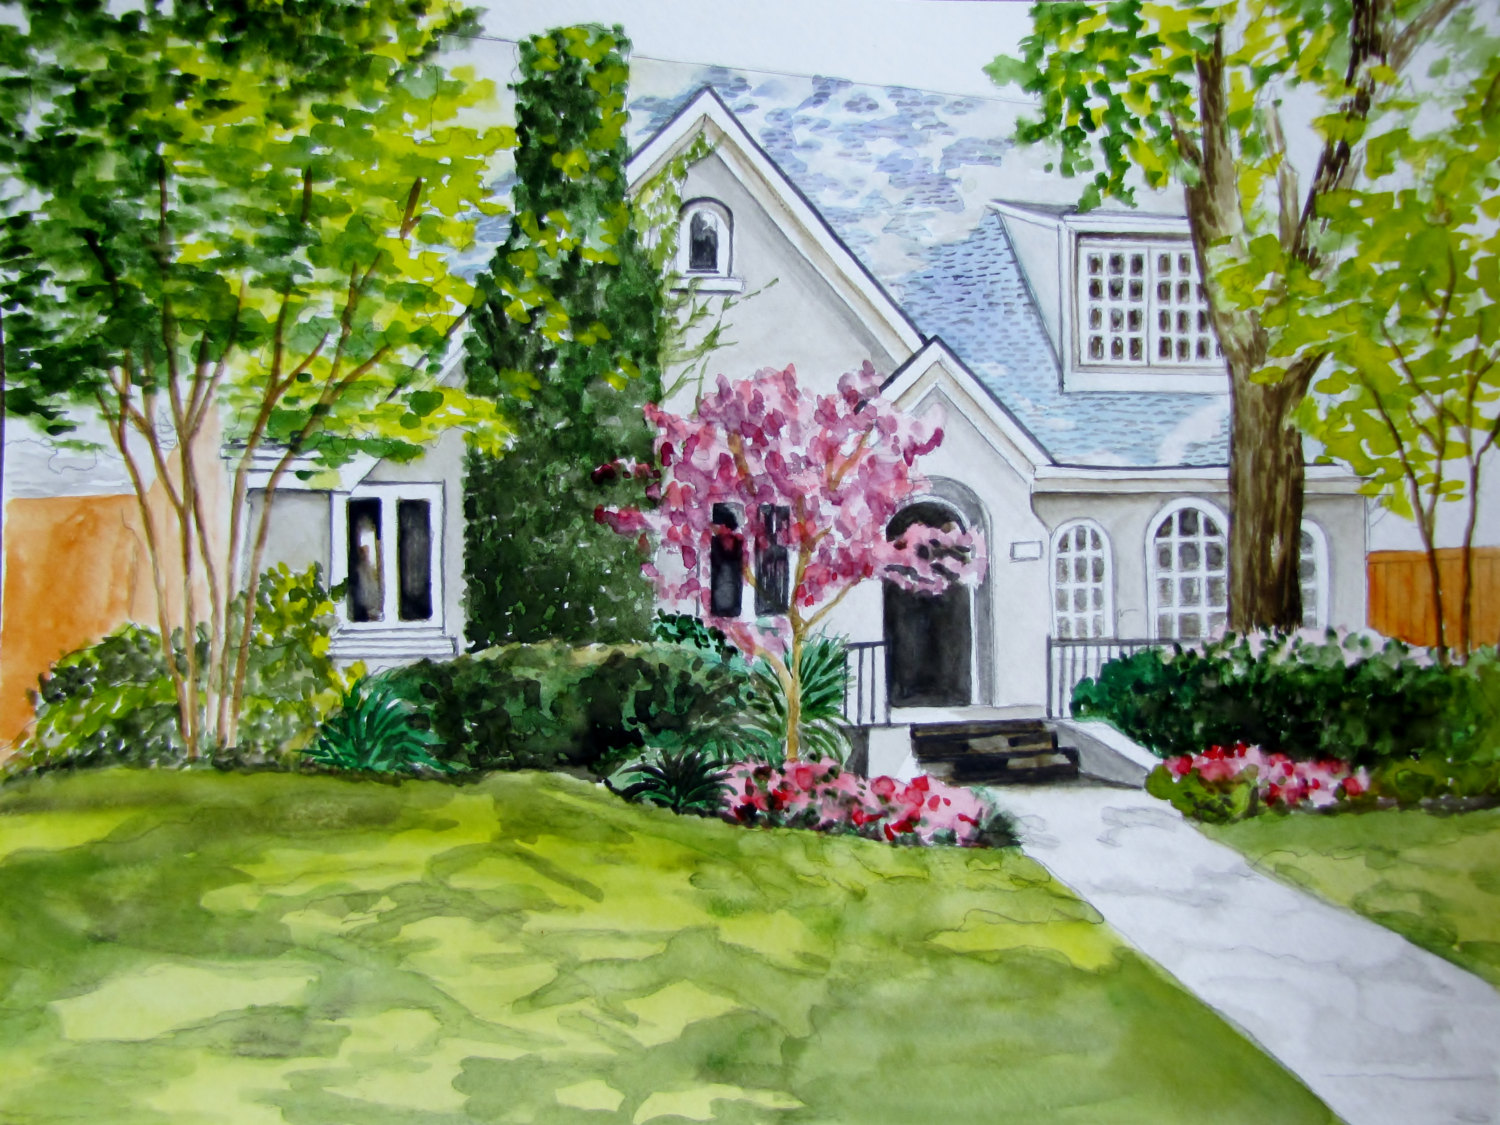 Original Watercolor Painting of Home, Realtor Closing Gift Ideas Over $100.00